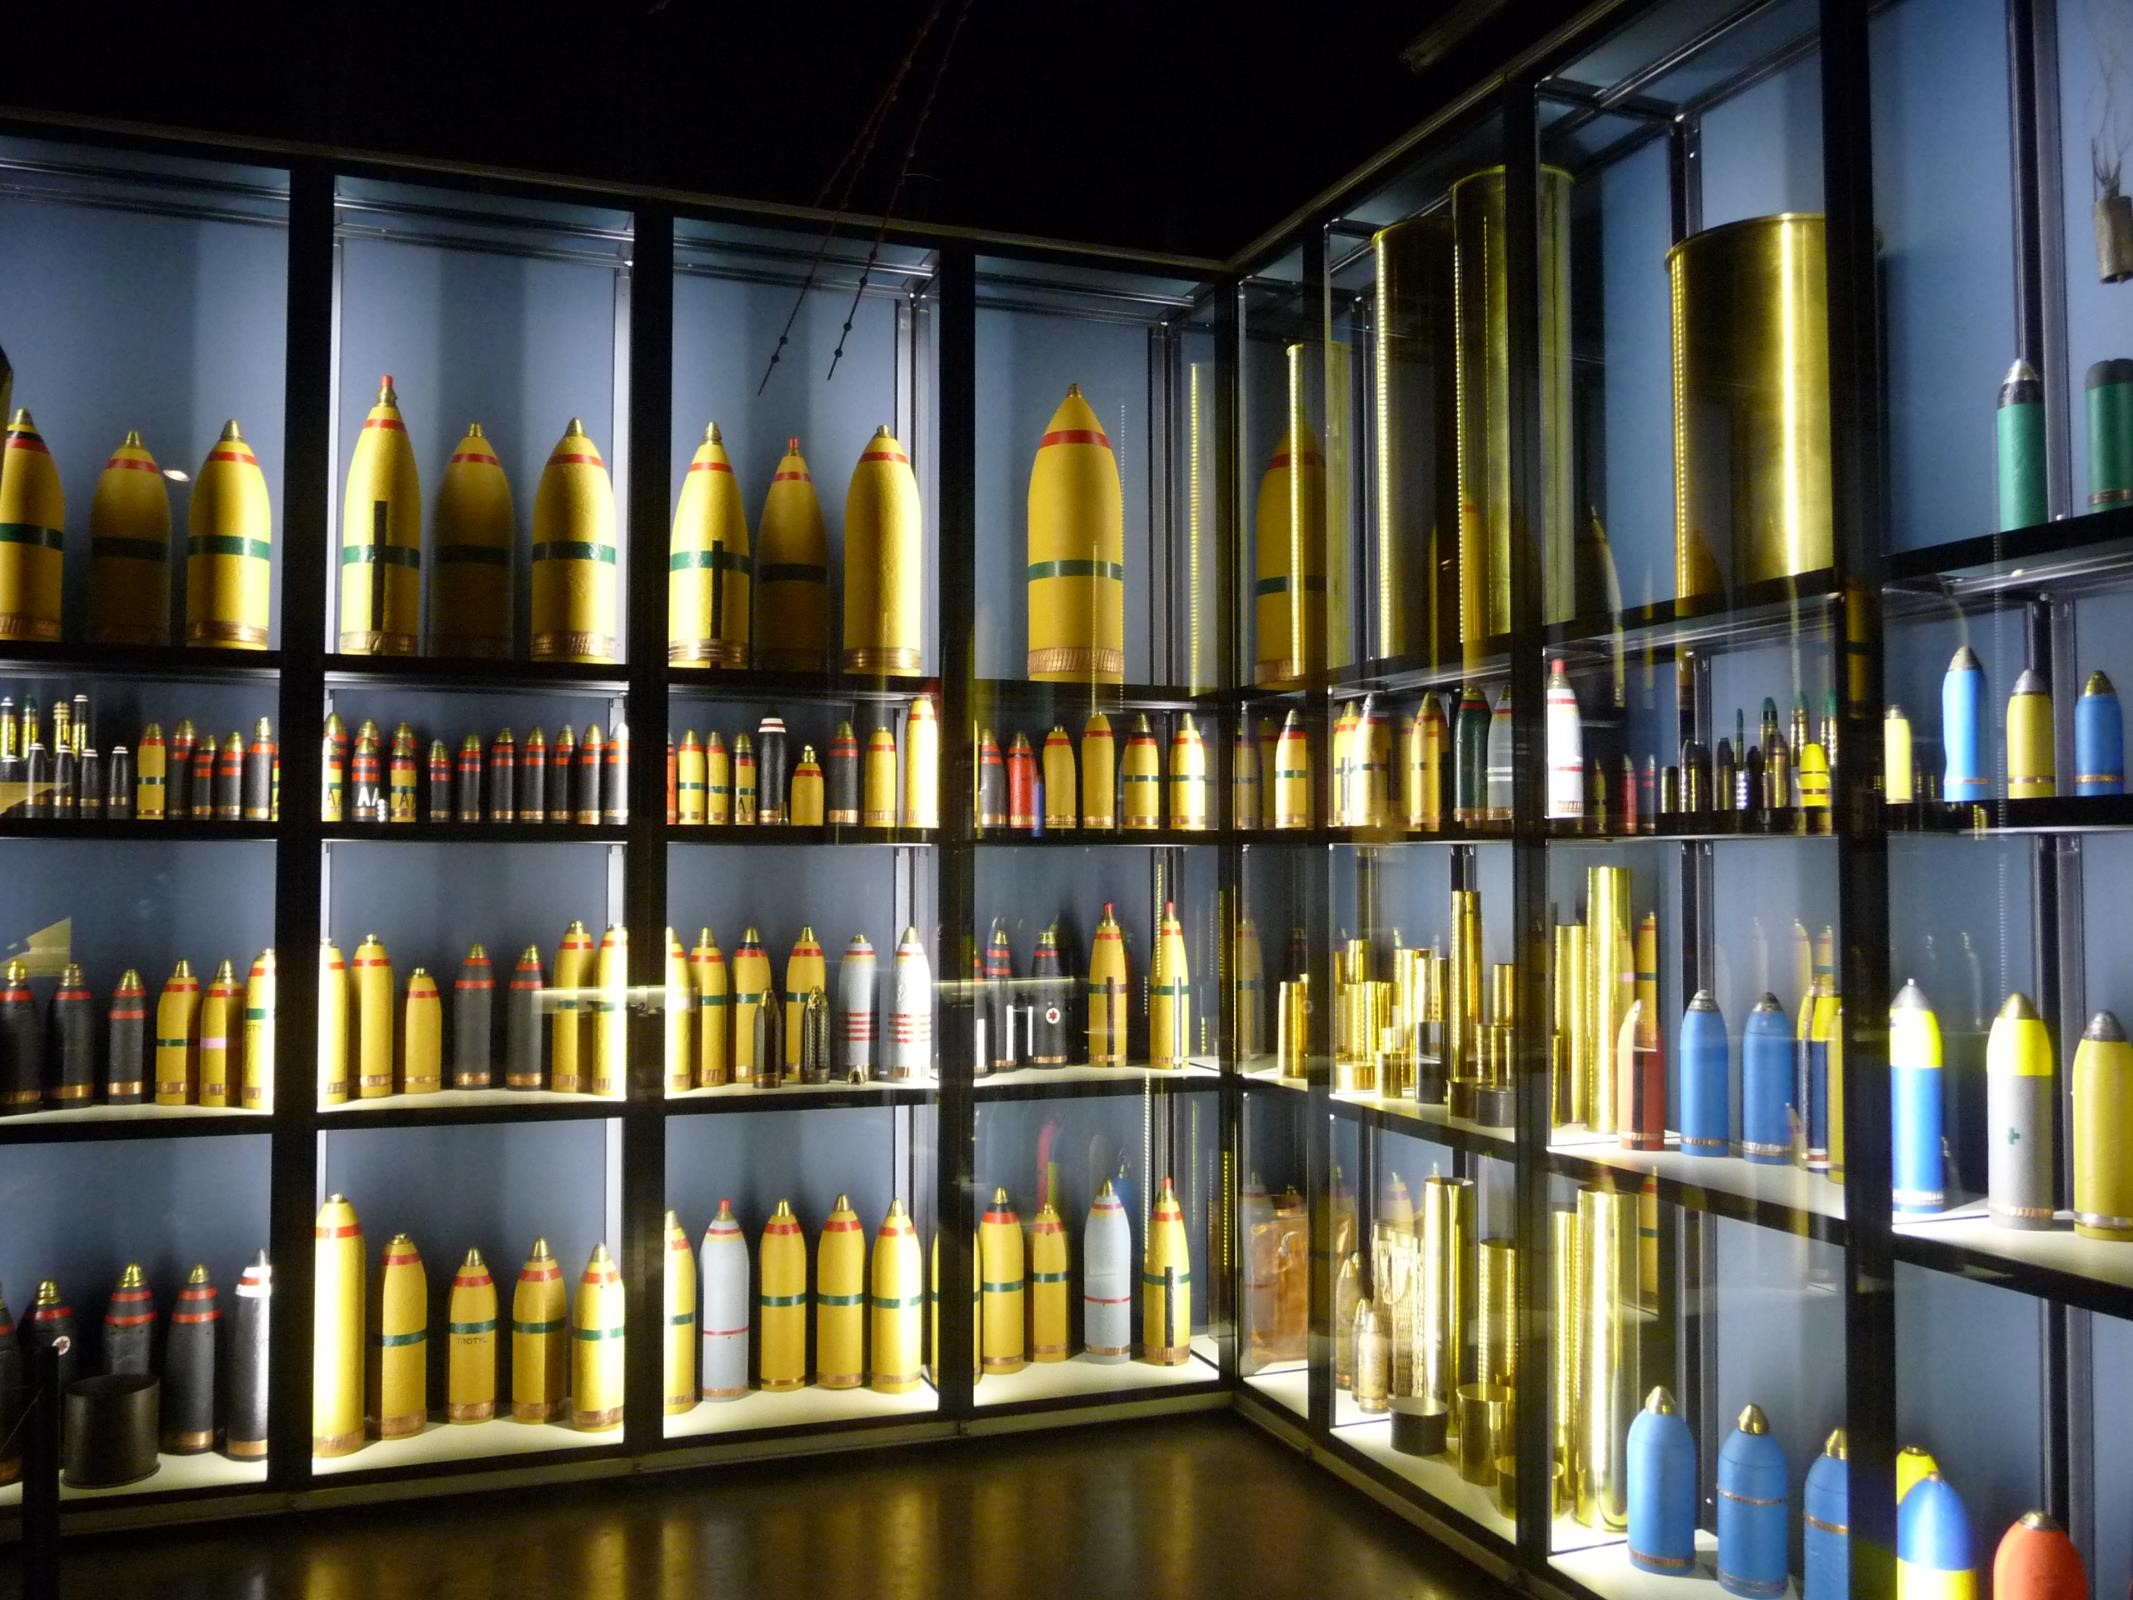 First World War shells on display